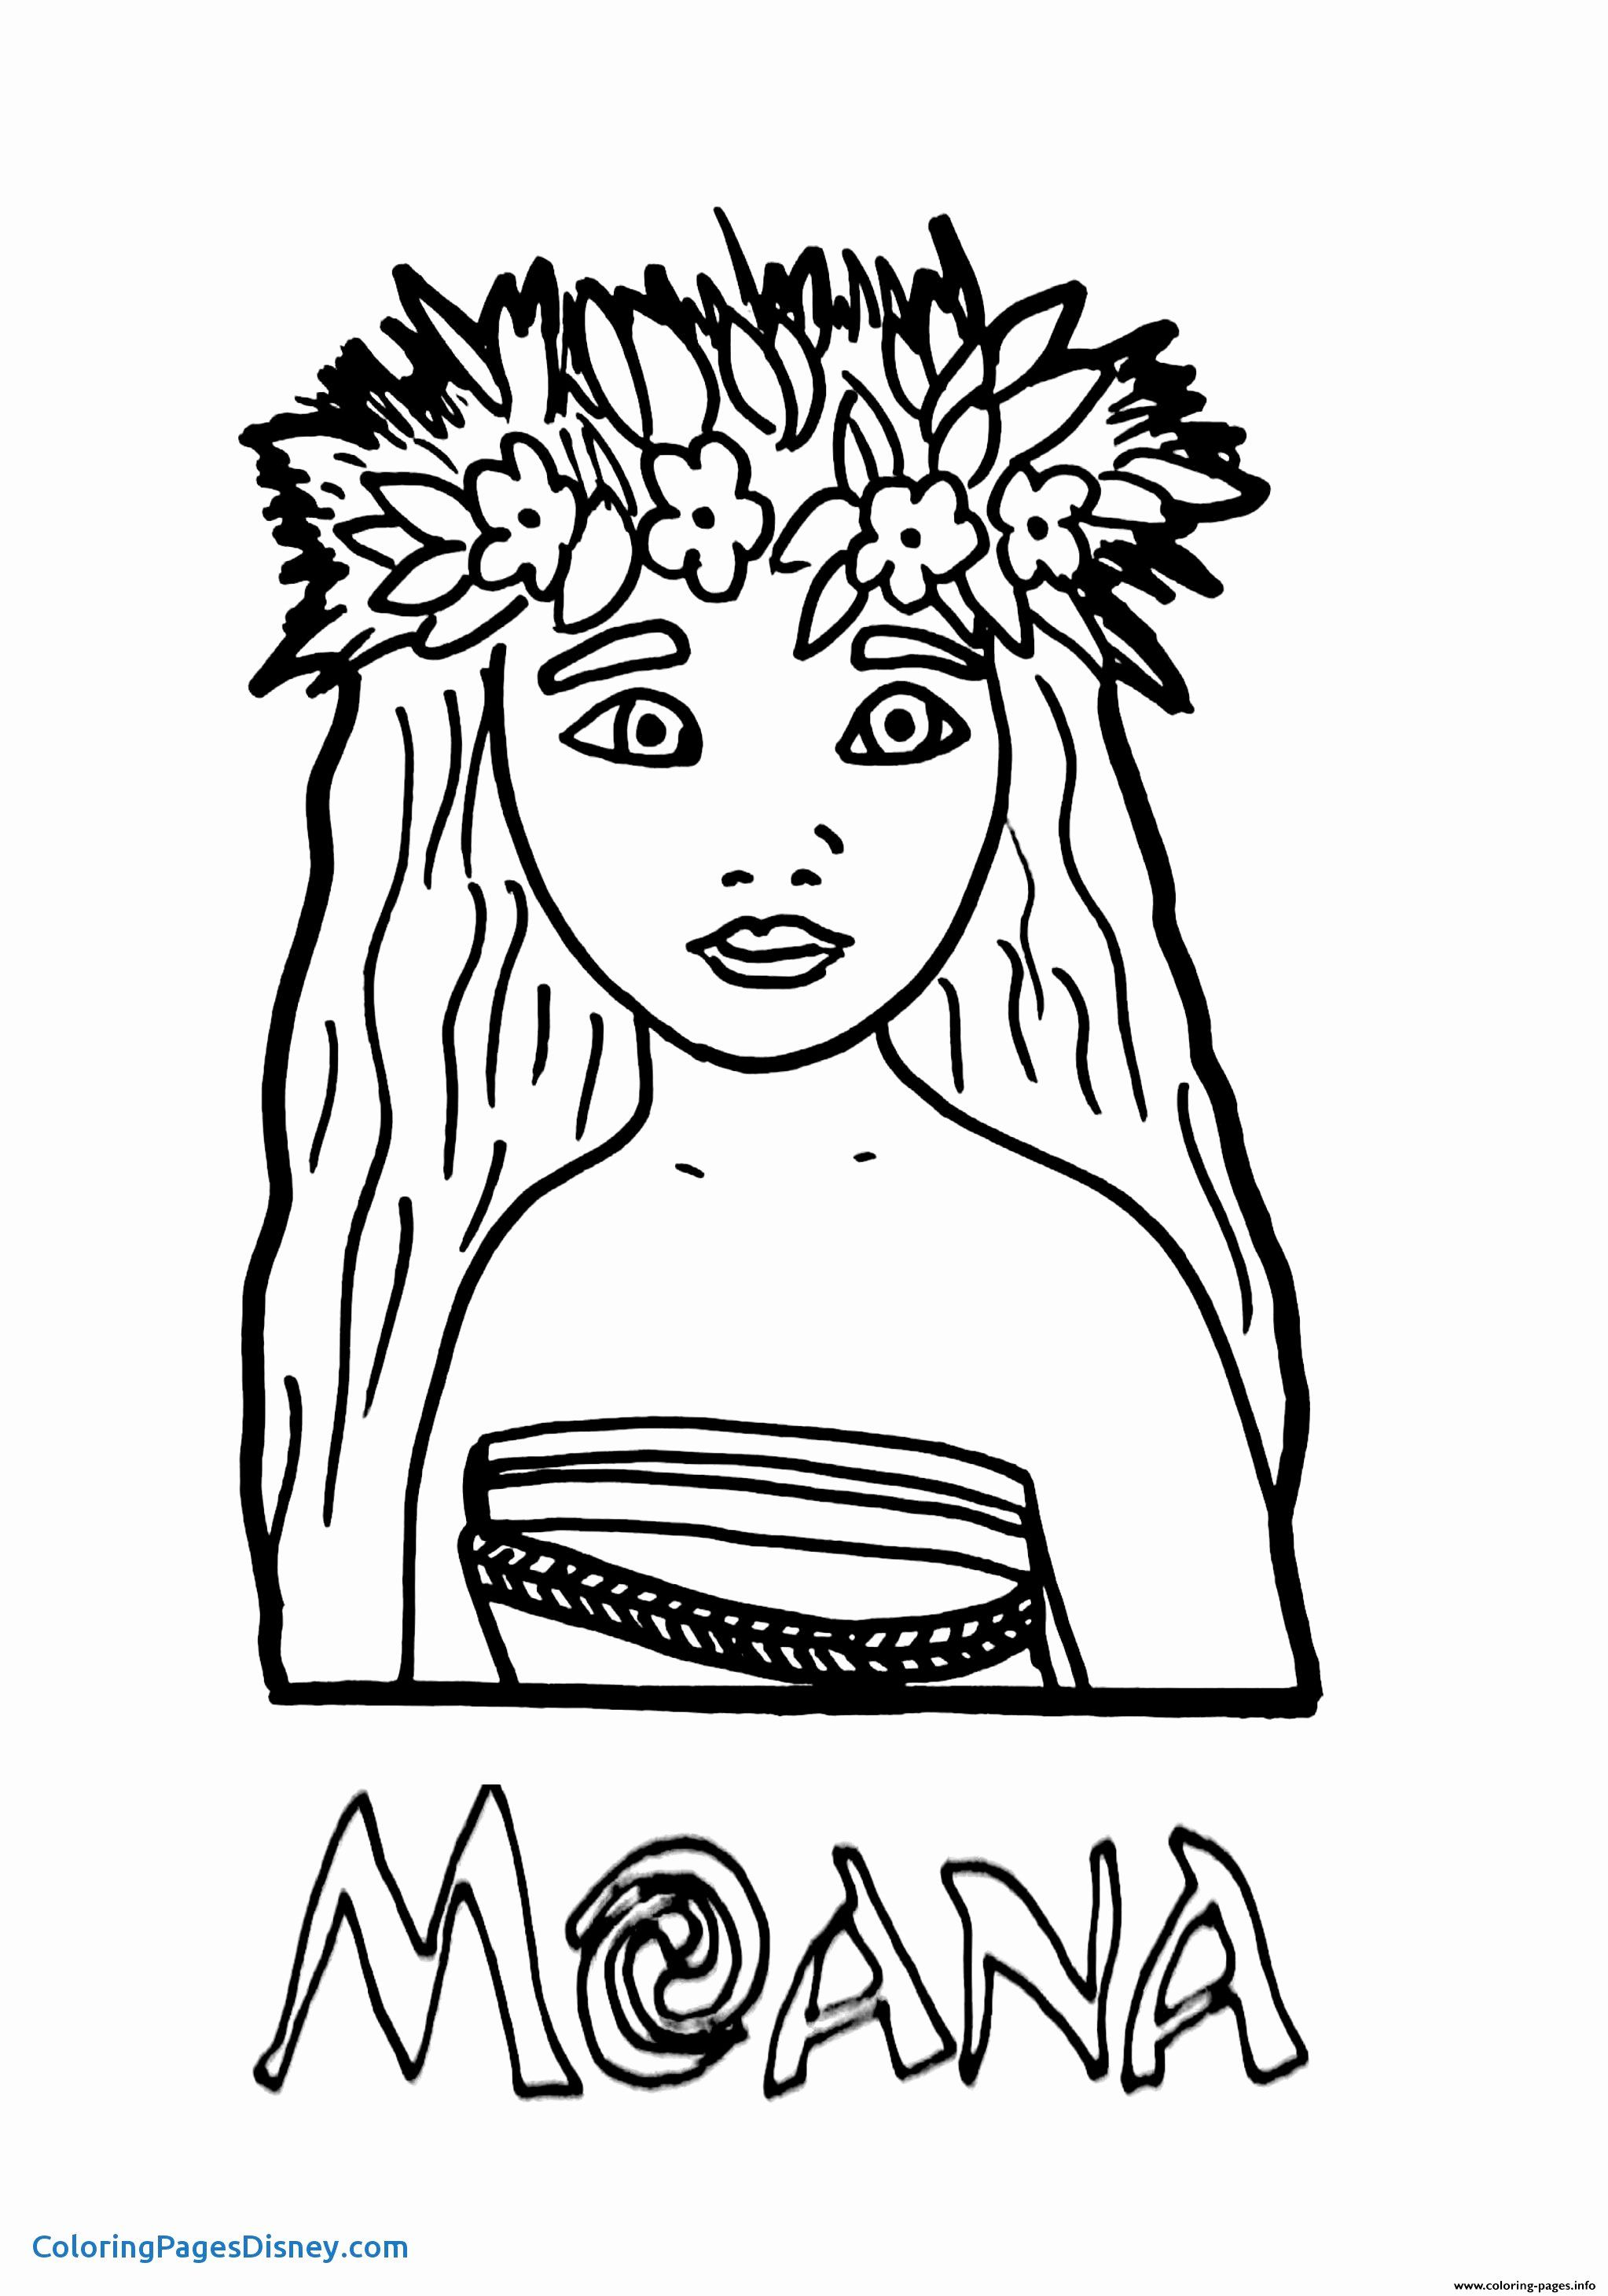 Coloring Pictures Of Space Unique 200 Fresh Balloons Black And White Inspiration Disney Star Wars Disney Princess Merida [ 2922 x 2046 Pixel ]